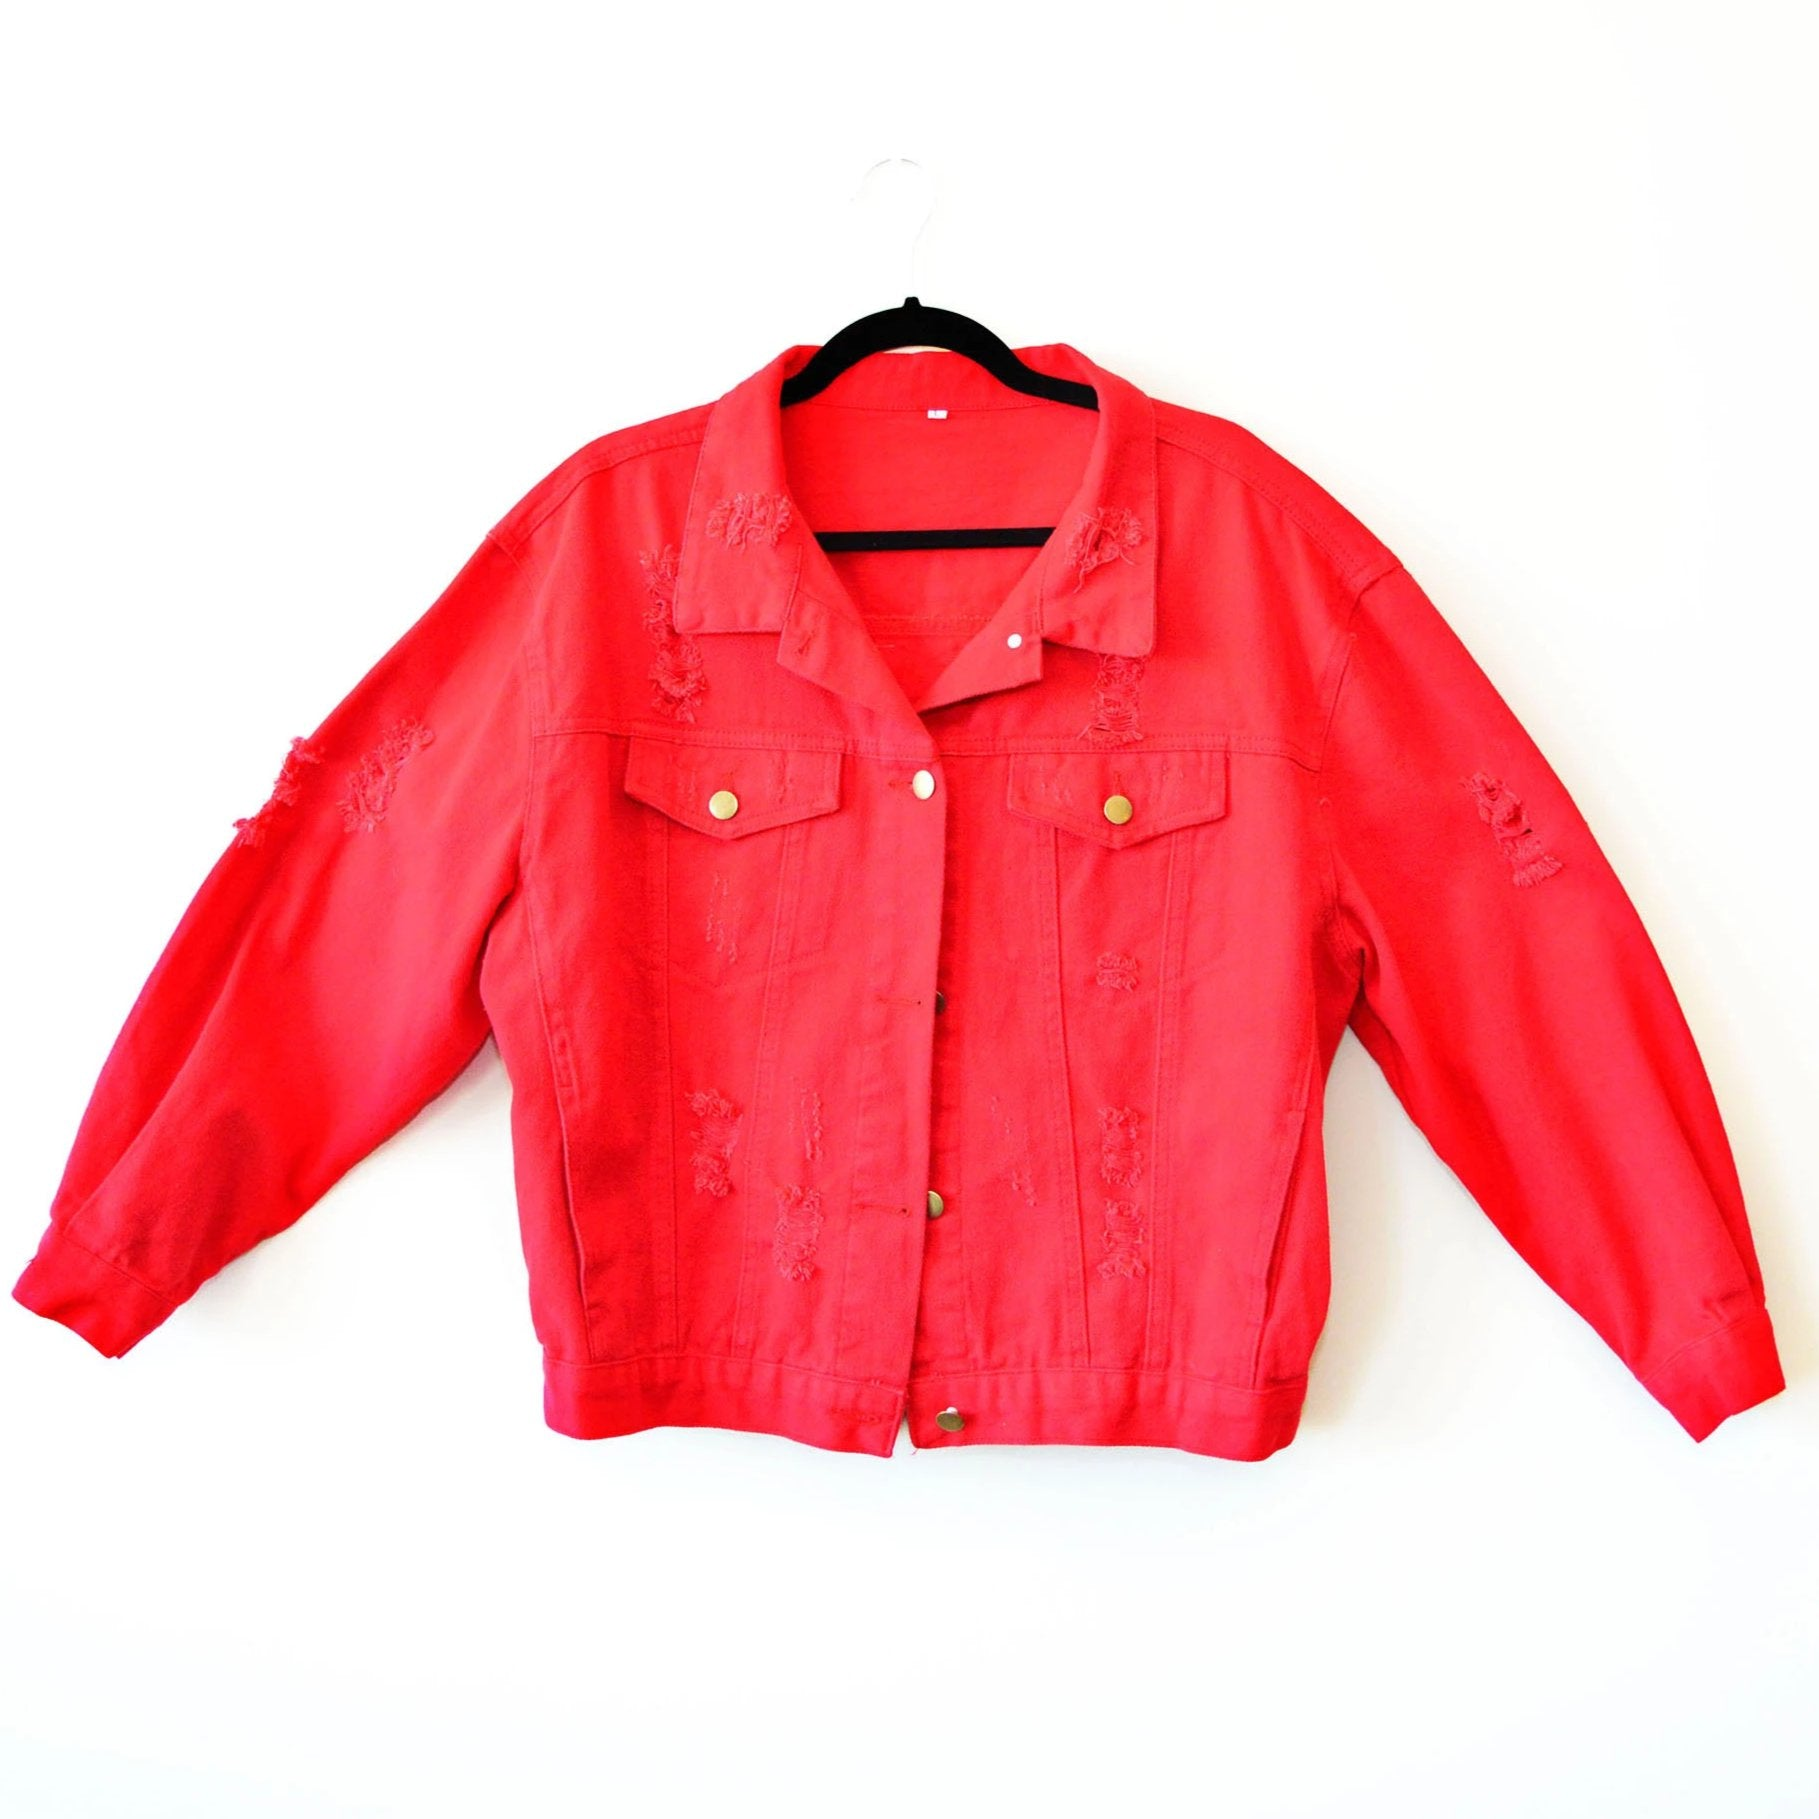 Africa Distressed Custom Denim Jacket in Red - in + out apparel